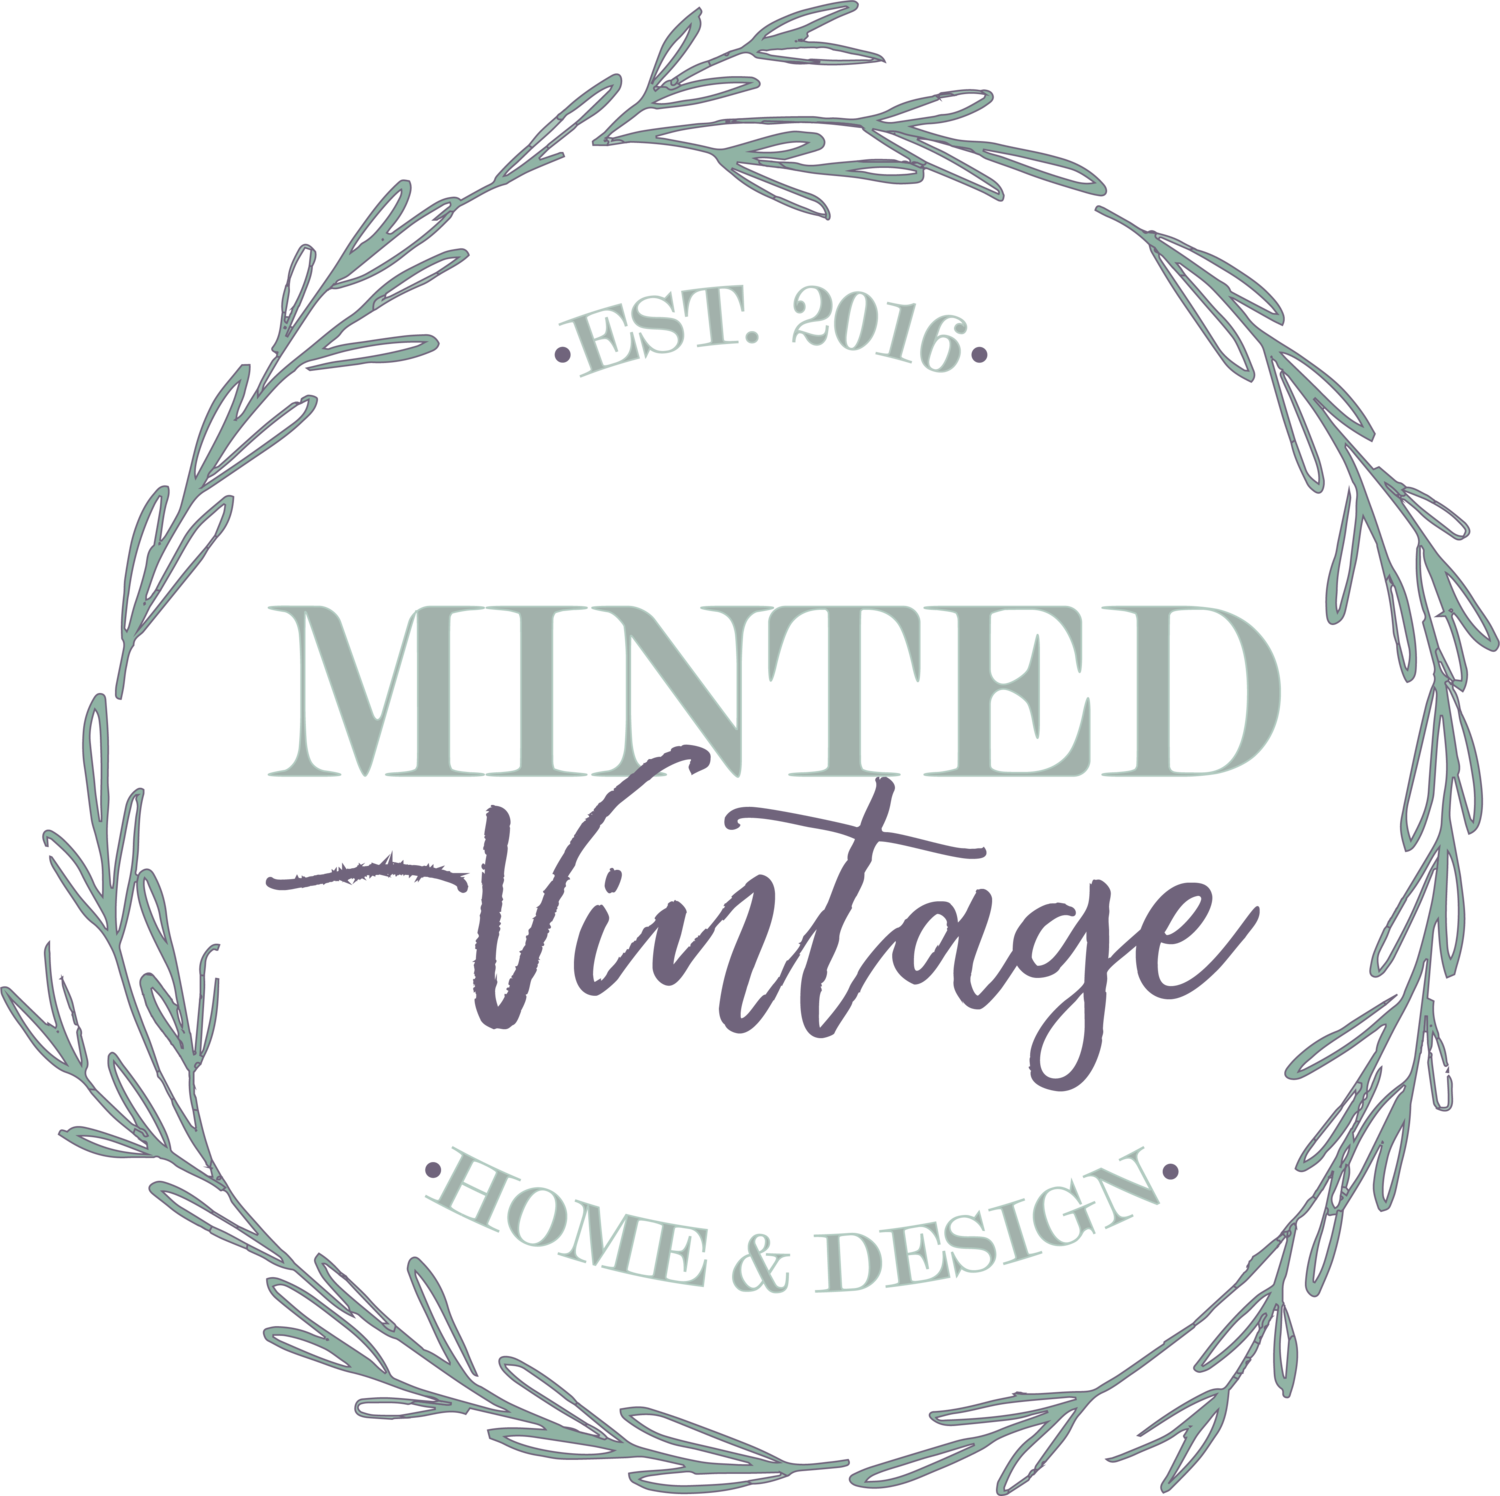 The Minted Vintage